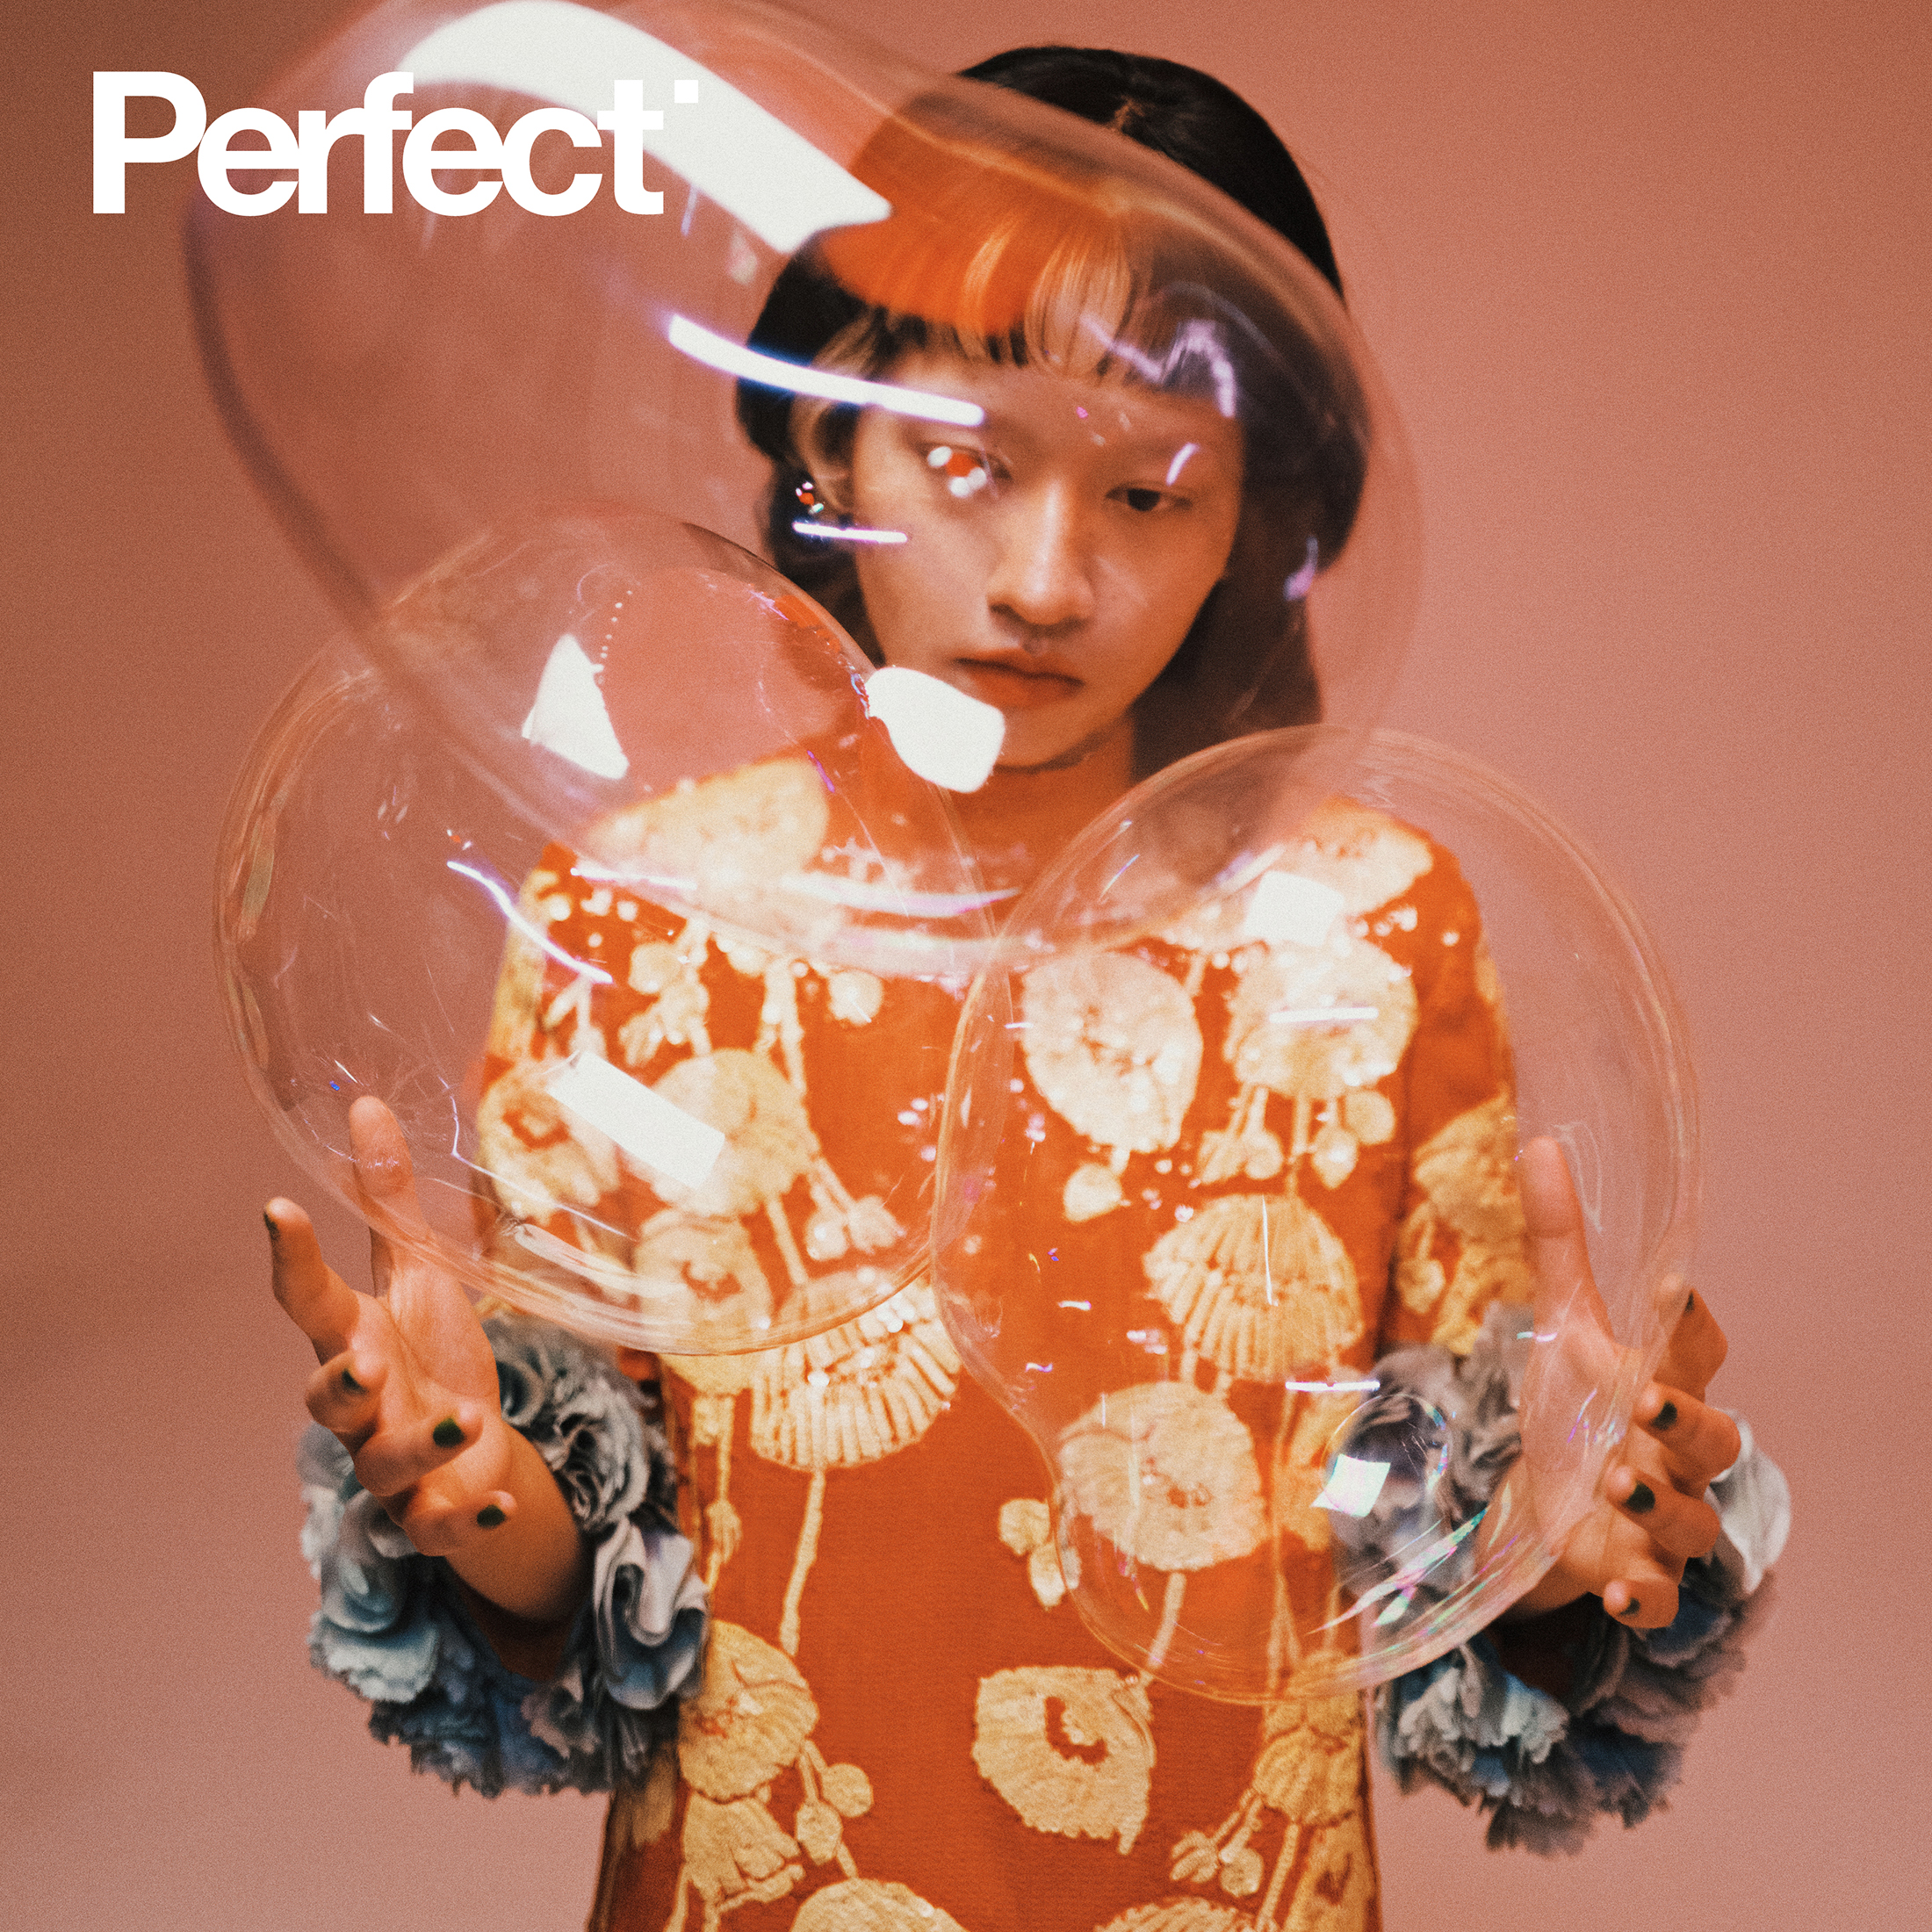 Perfect Magazine Launches Its First Print Edition Featuring A Collaboration With Gucci